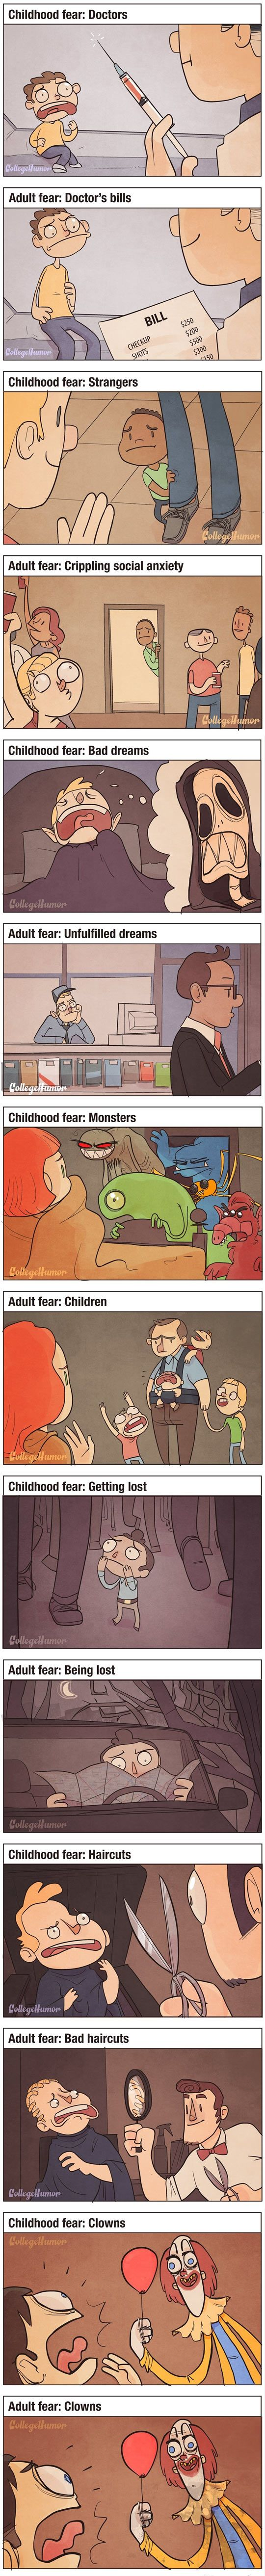 Child Fears Vs. Adult Fears